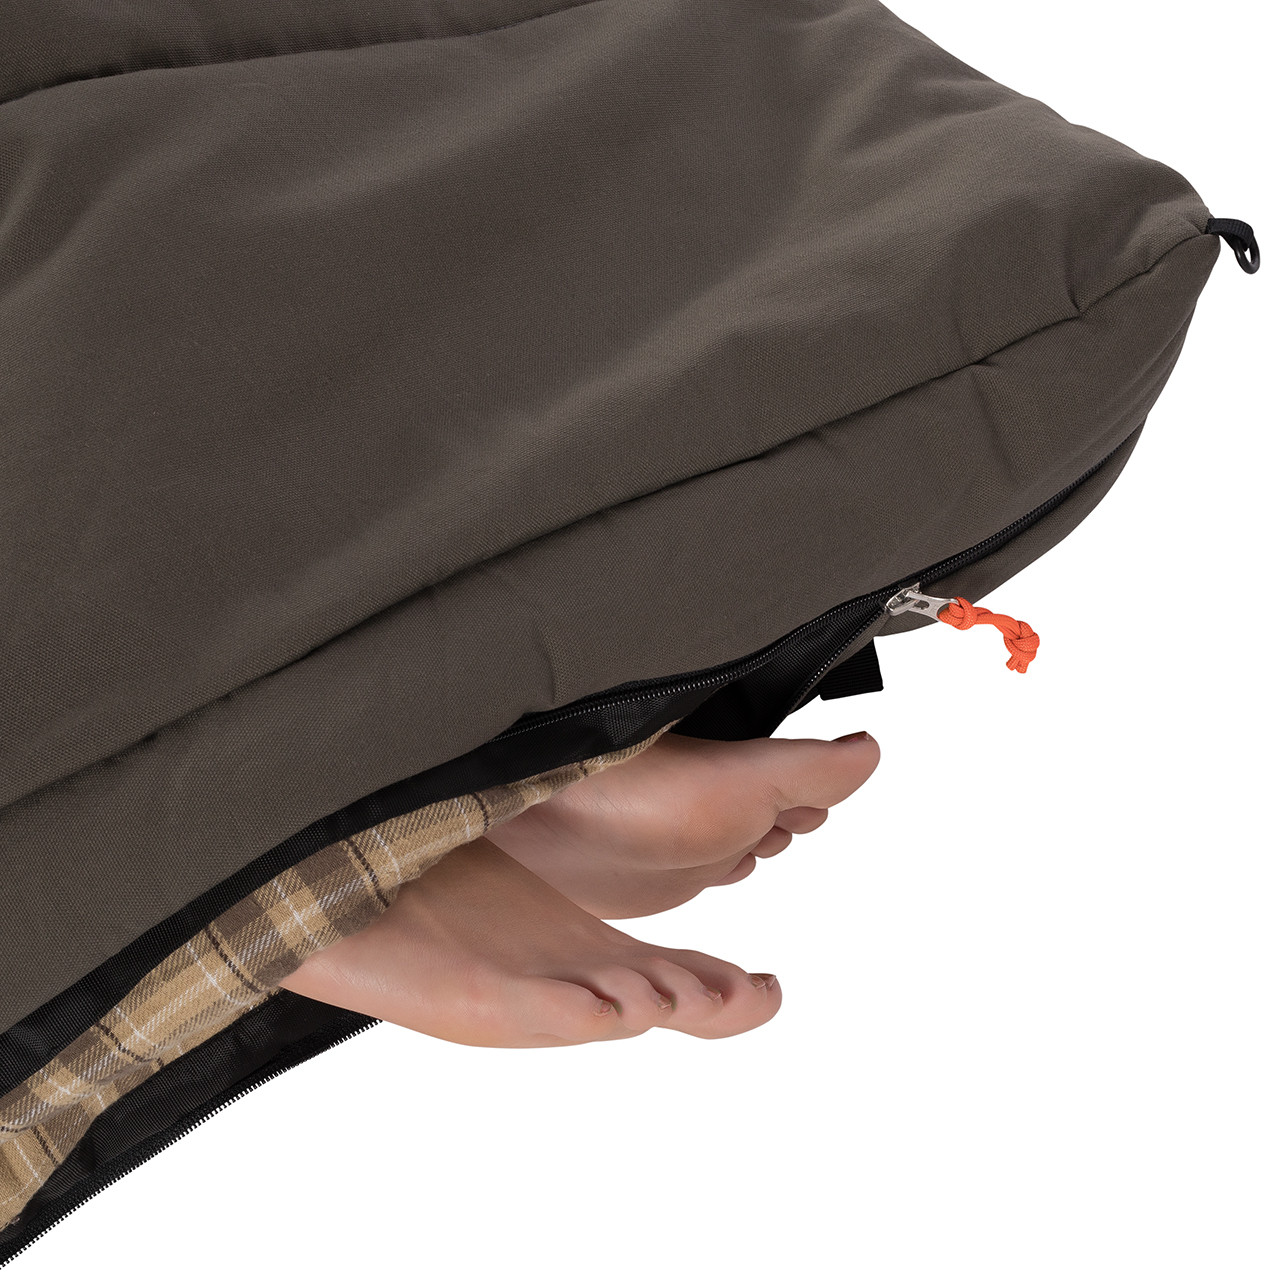 20°F Reg. Z Top Sleeping Bag